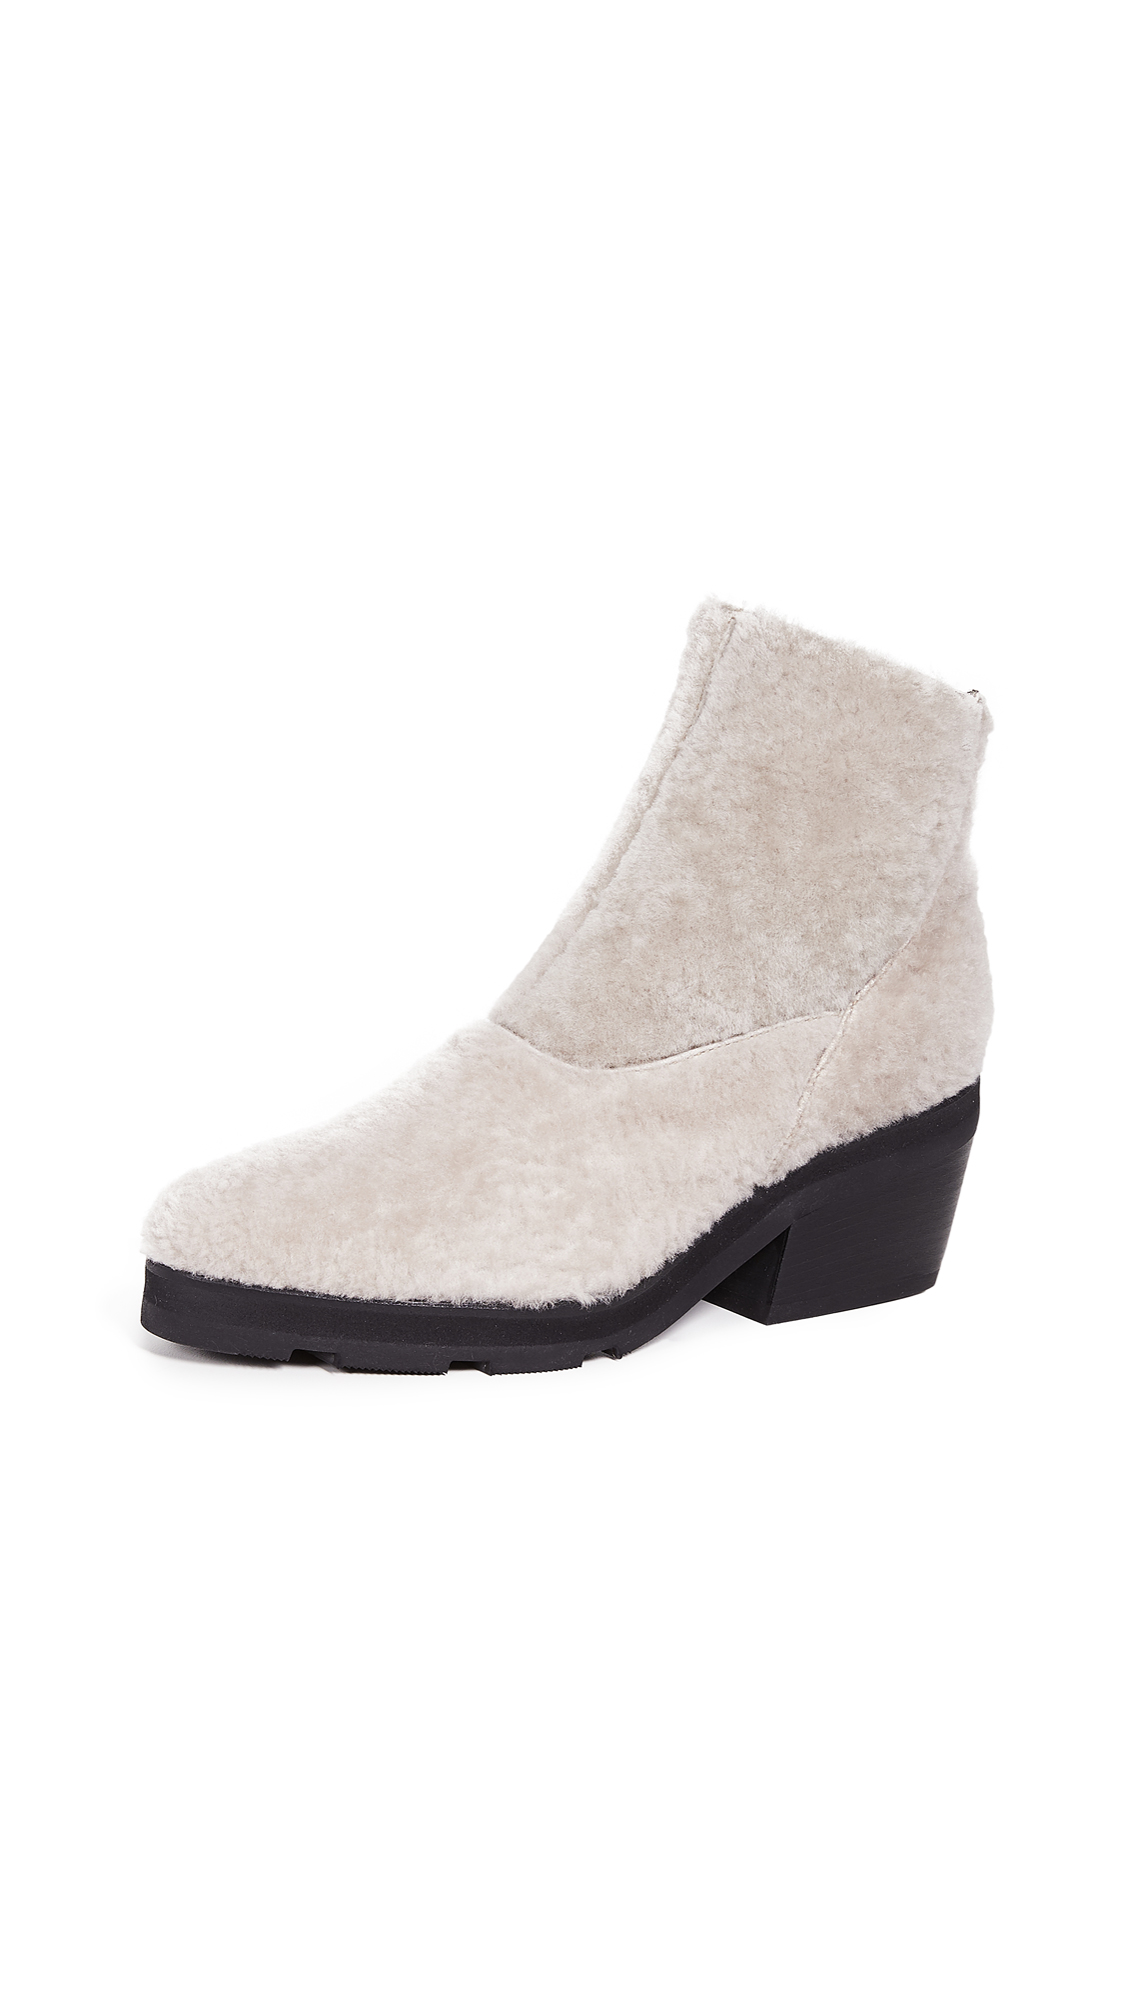 LD TUTTLE The Door Shearling Booties in Fog